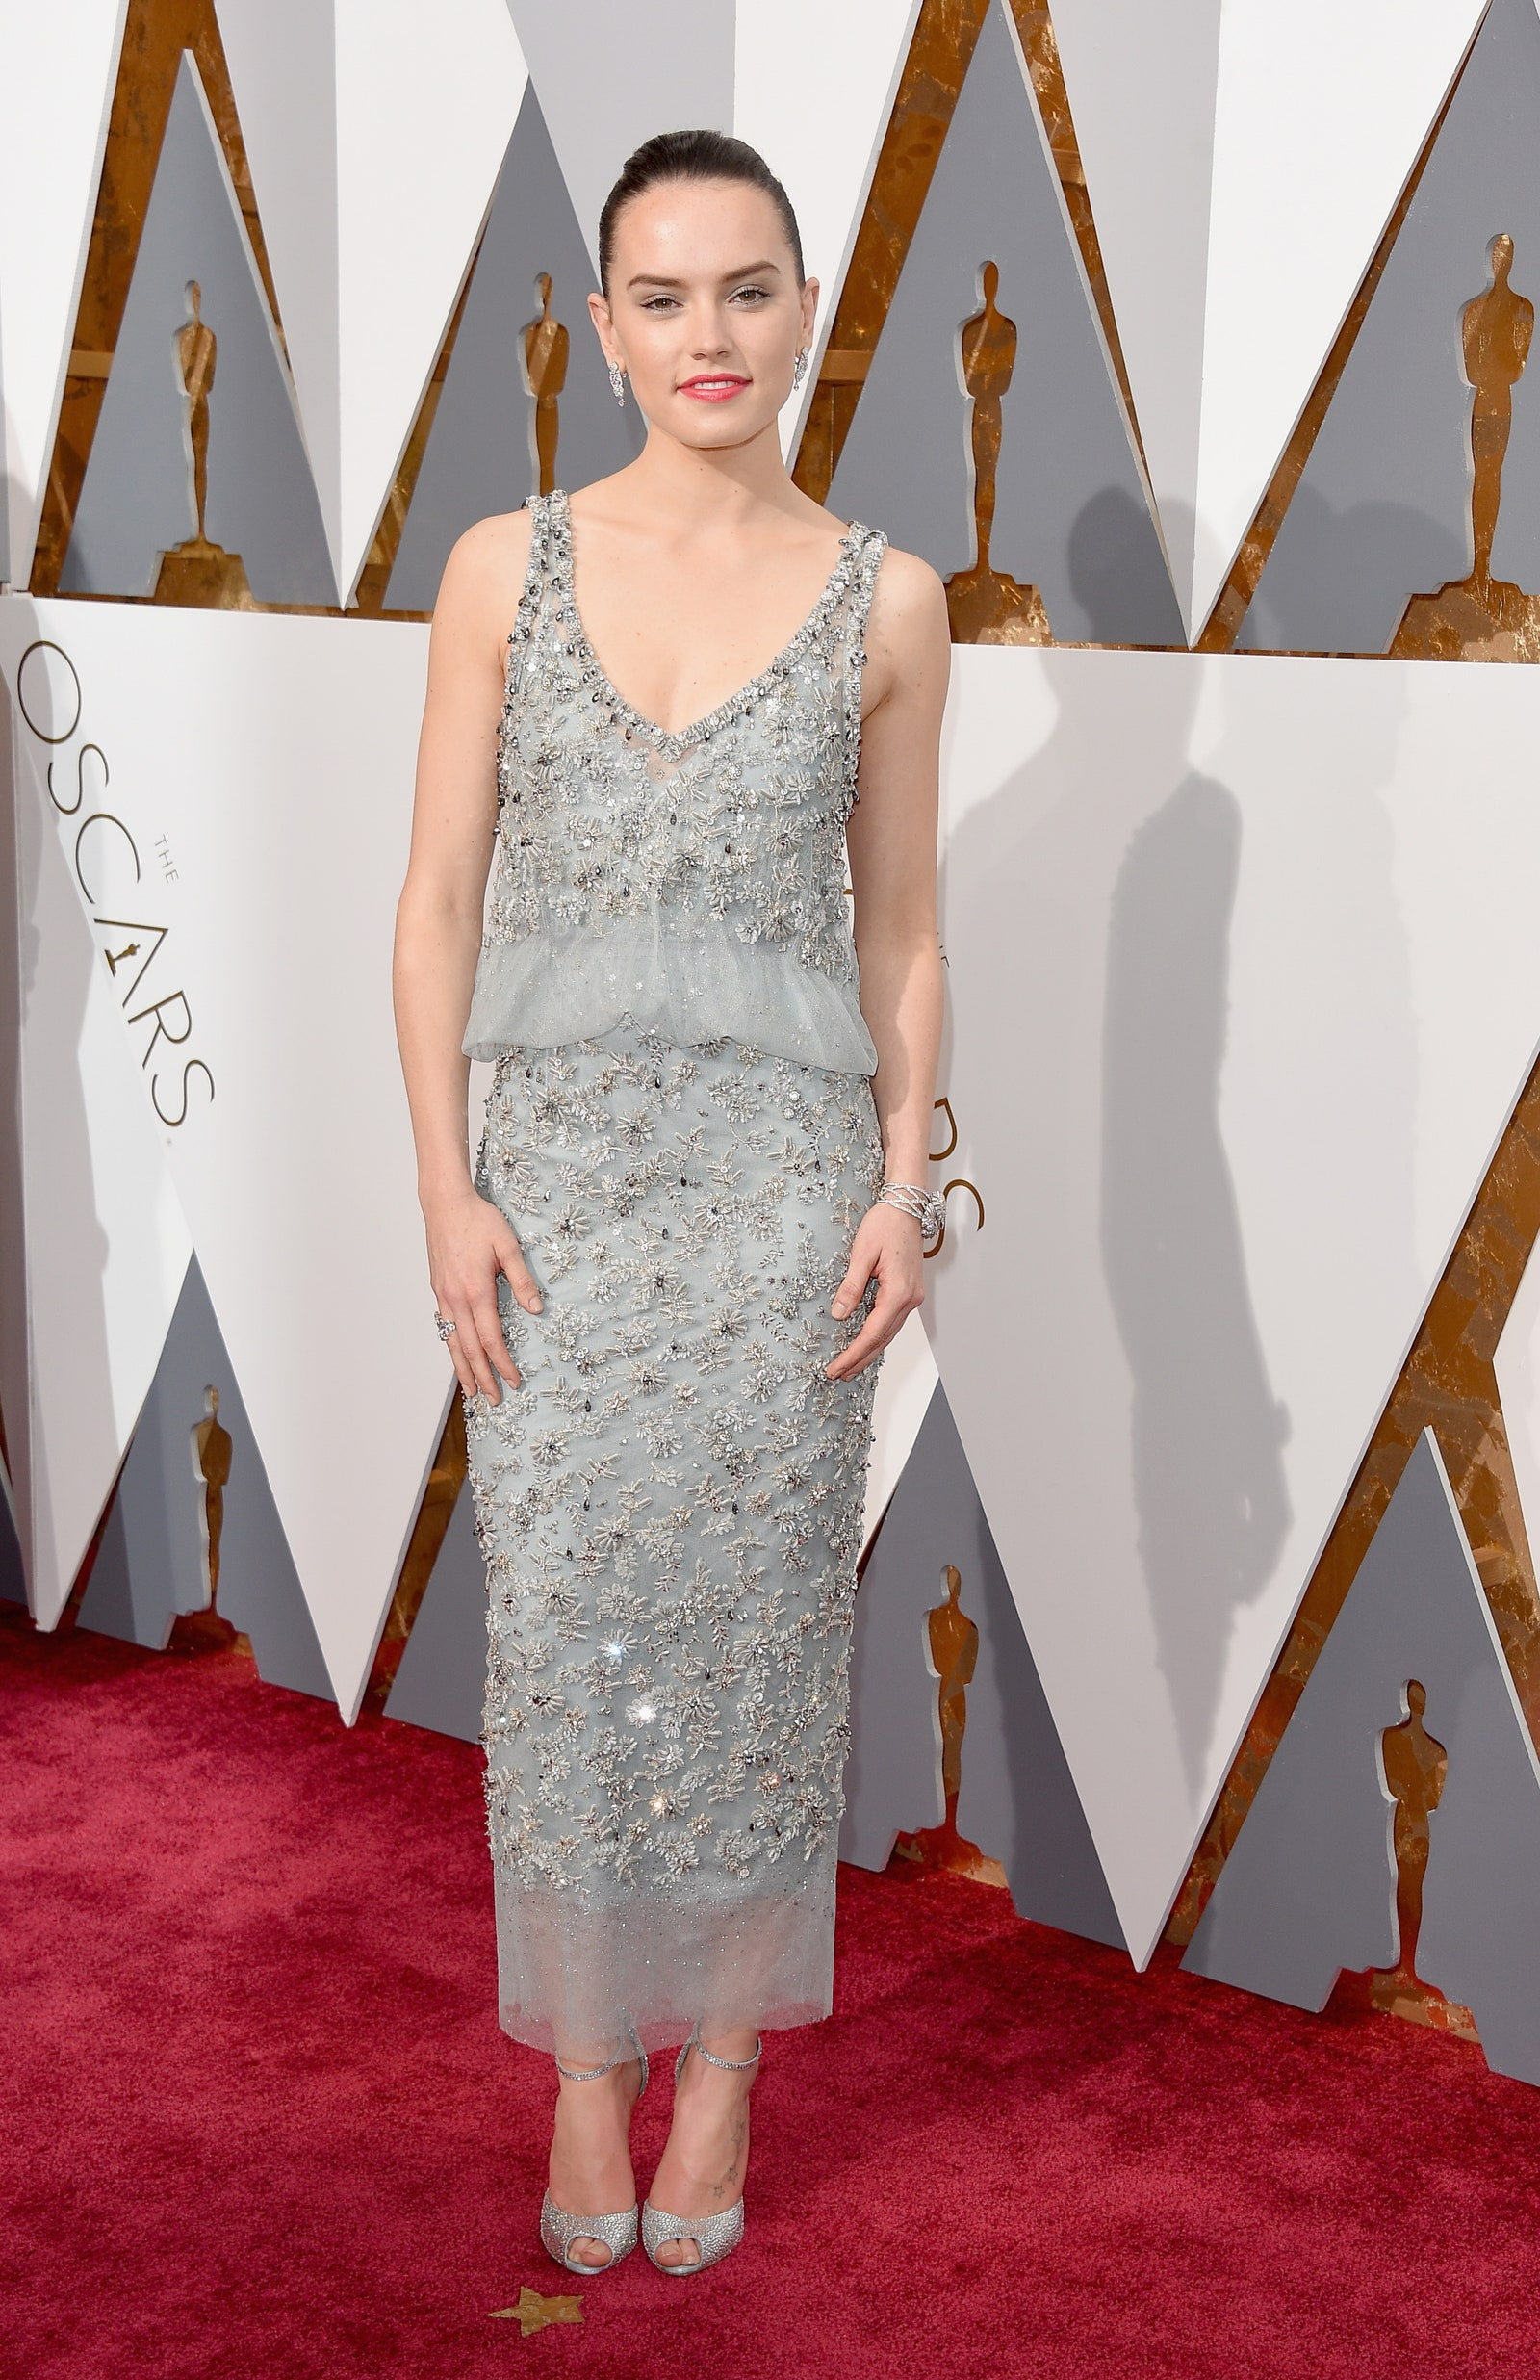 Daisy Ridley In A Glittering Silver Sequin and Beaded Dress